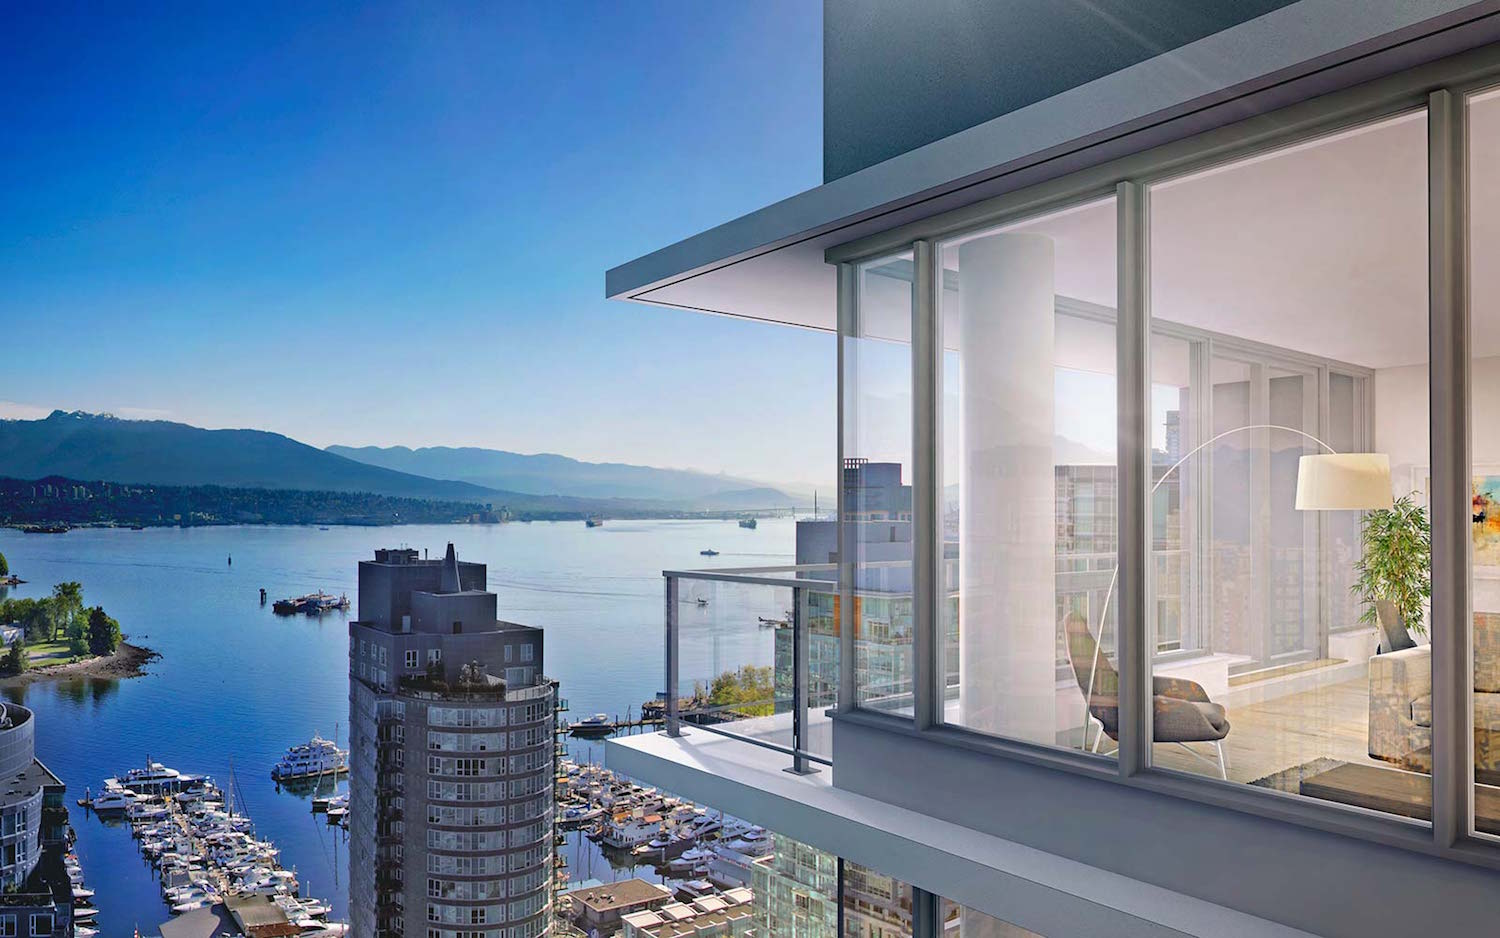 NW Views 620 cardero st 1003   620 cardero st   the cardero   coal harbour pre sale by bosajpg